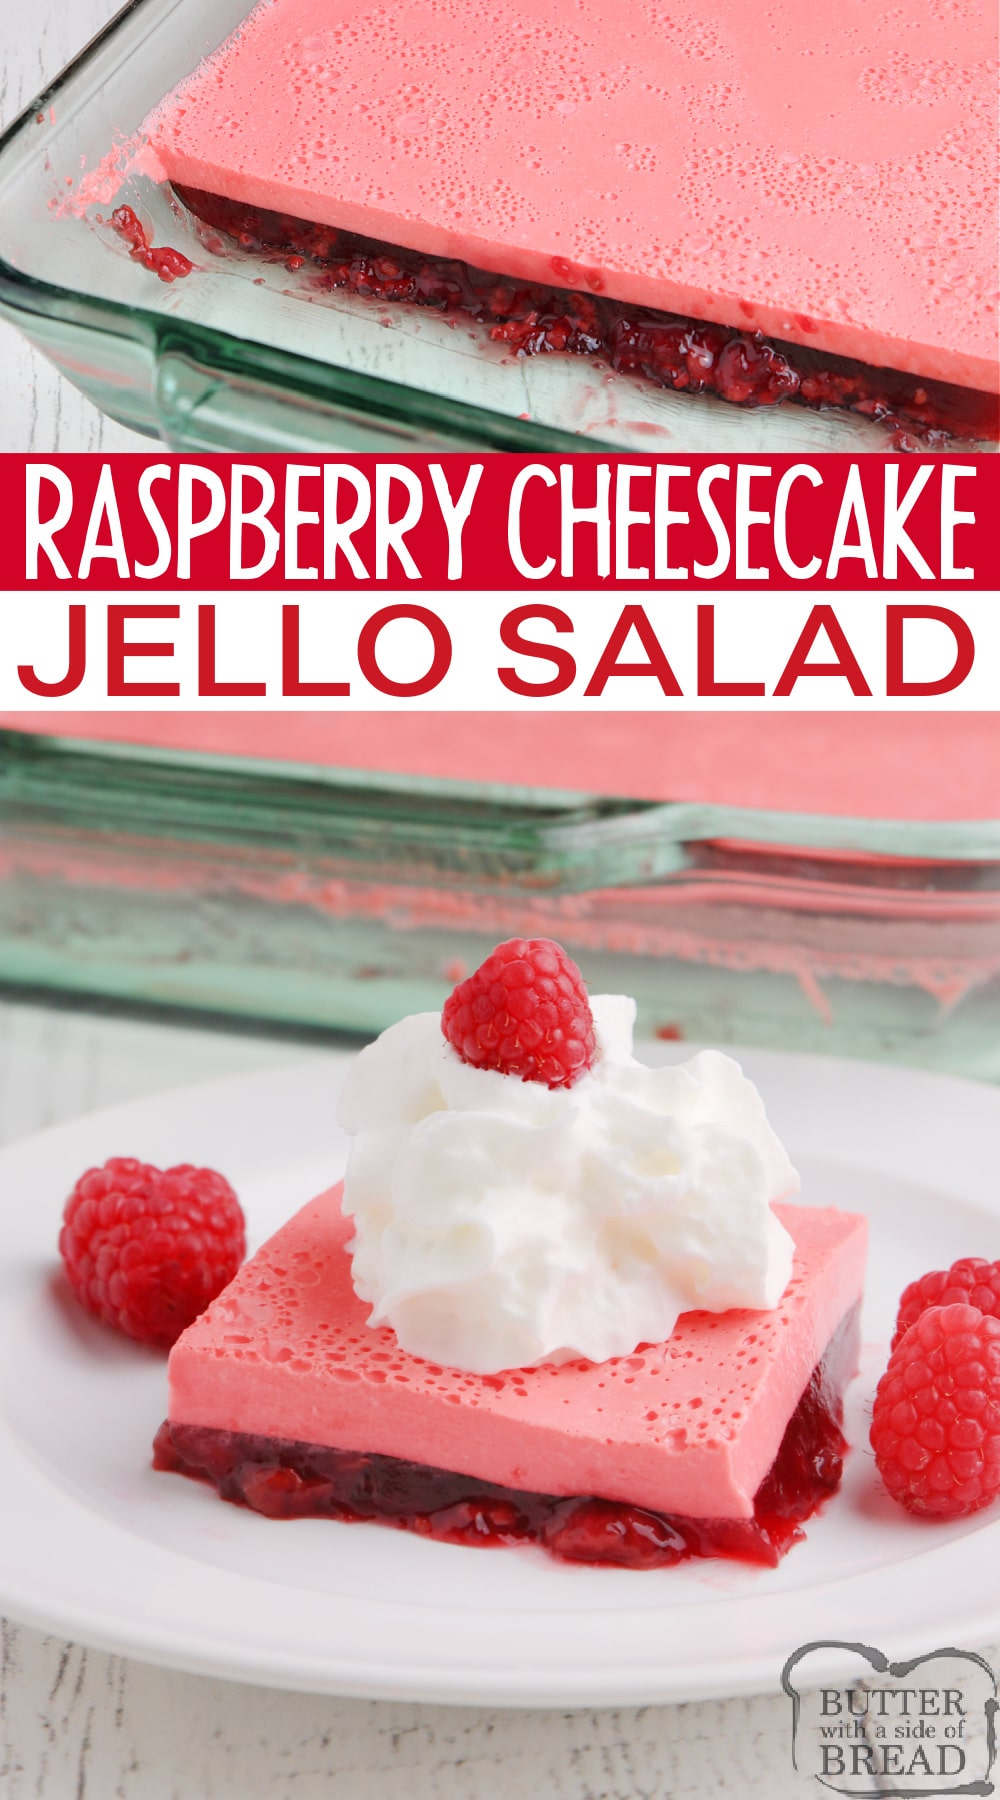 Raspberry Cheesecake Jello made with only 4 ingredients for a delicious side dish or dessert. This Jello recipe is made with cream cheese, yogurt and pie filling and can be made in any flavor you want!